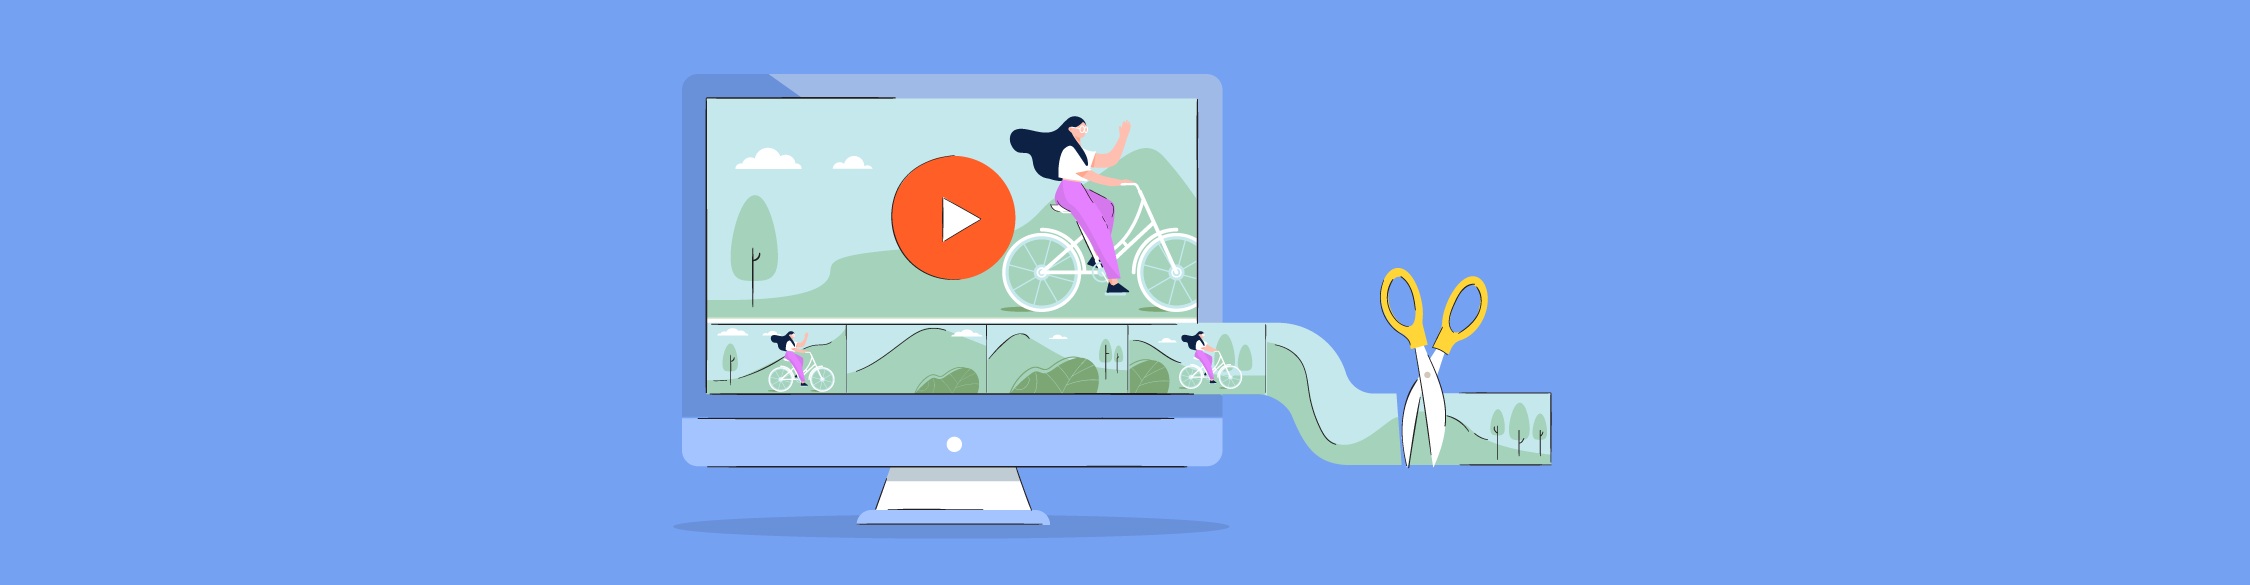 An illustration of a video of a woman riding her bike being trimmed.